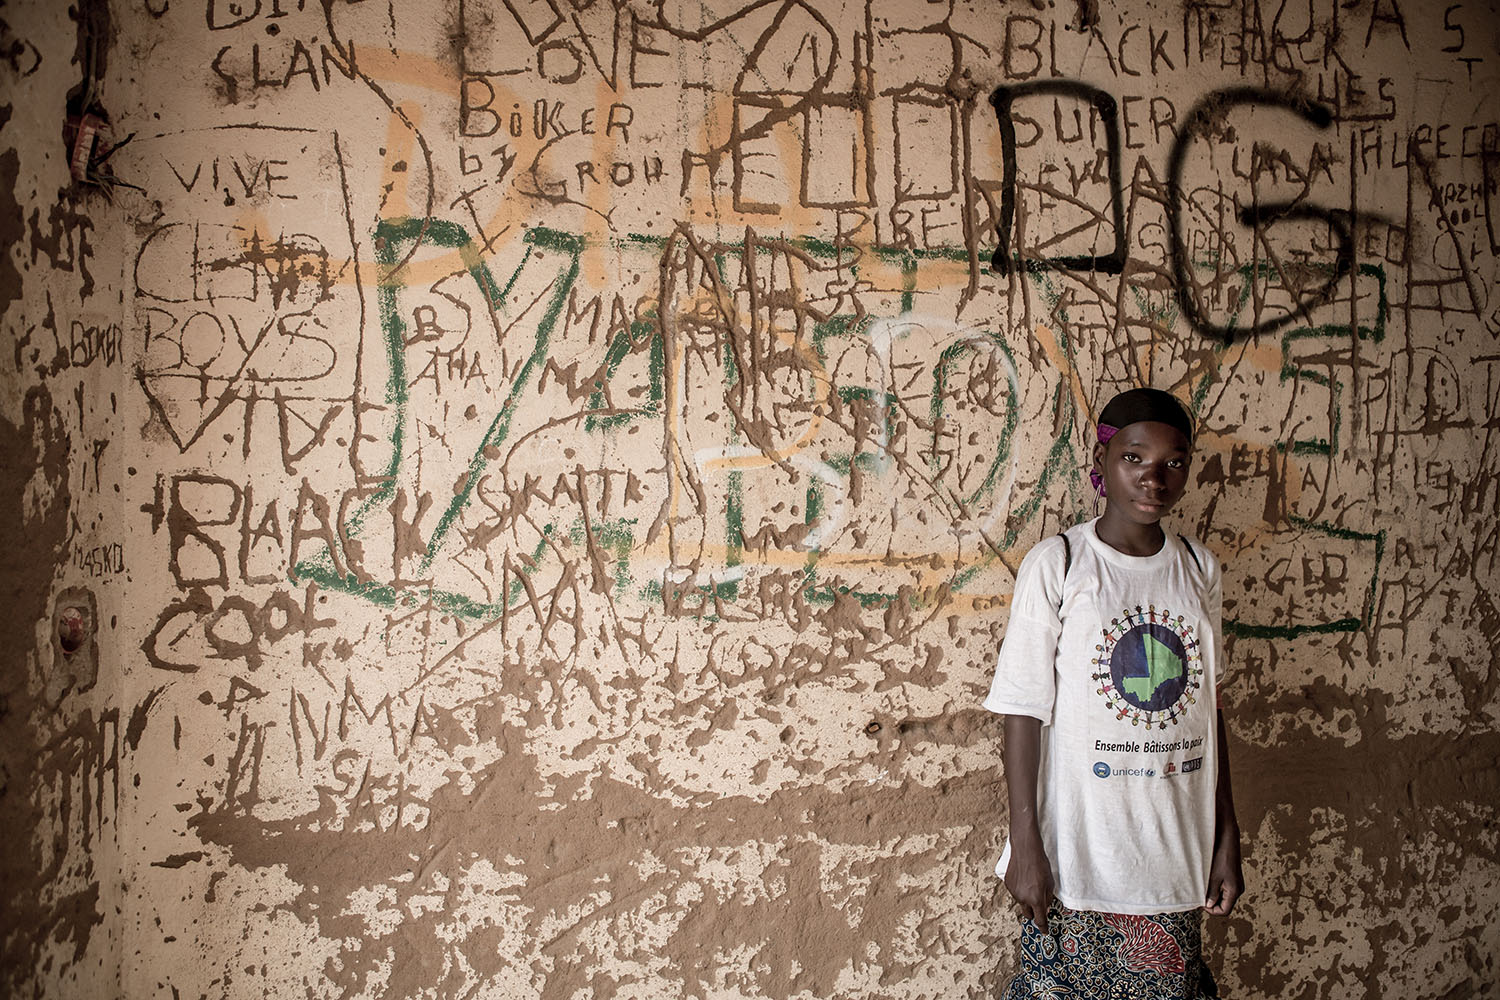 Adeoula, 12 years old (RELEASED) a student at the Accelerated Learning Centre in Bourougoundye Gao, Northern Mali where ongoing conflicts in the northern regions of Mali continue to have devastating effects education. UNICEF supports the re-opening of sch